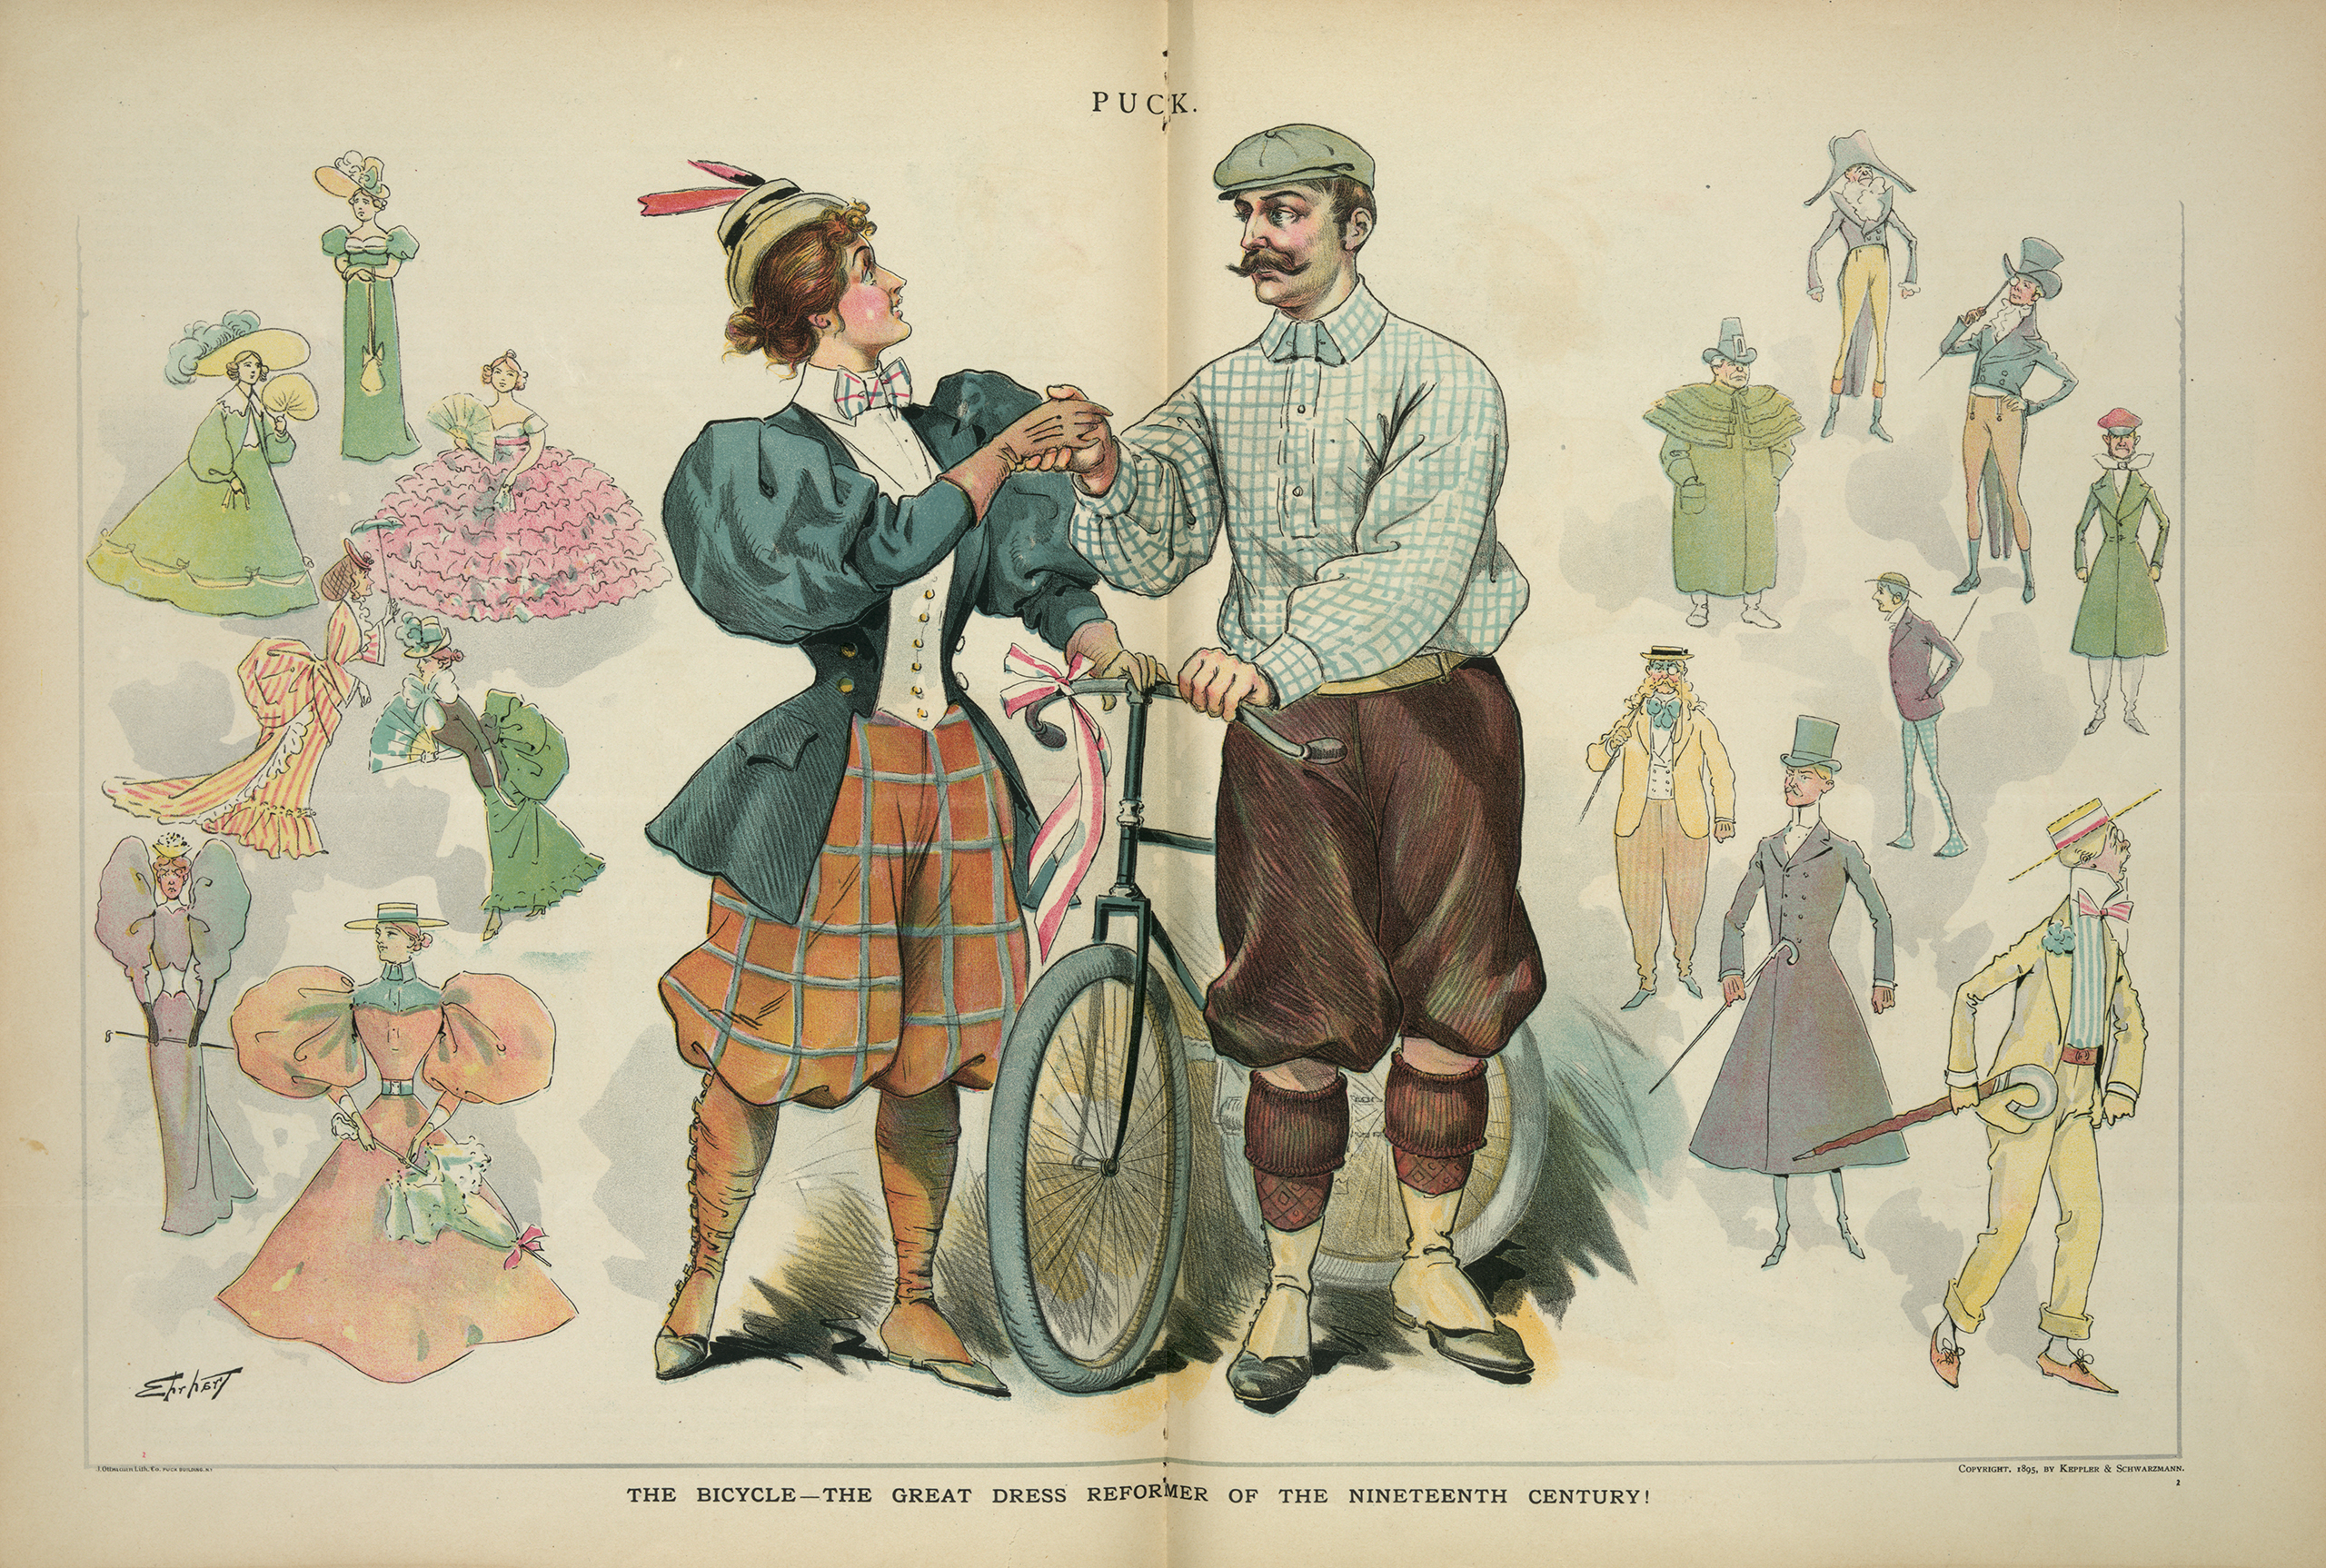 An Illustration from Puck shows a man and a woman wearing knickers and bloomers, standing with a bicycle between them, shaking hands; to the right and left are examples of 19th century fashion, Aug. 7, 1895.